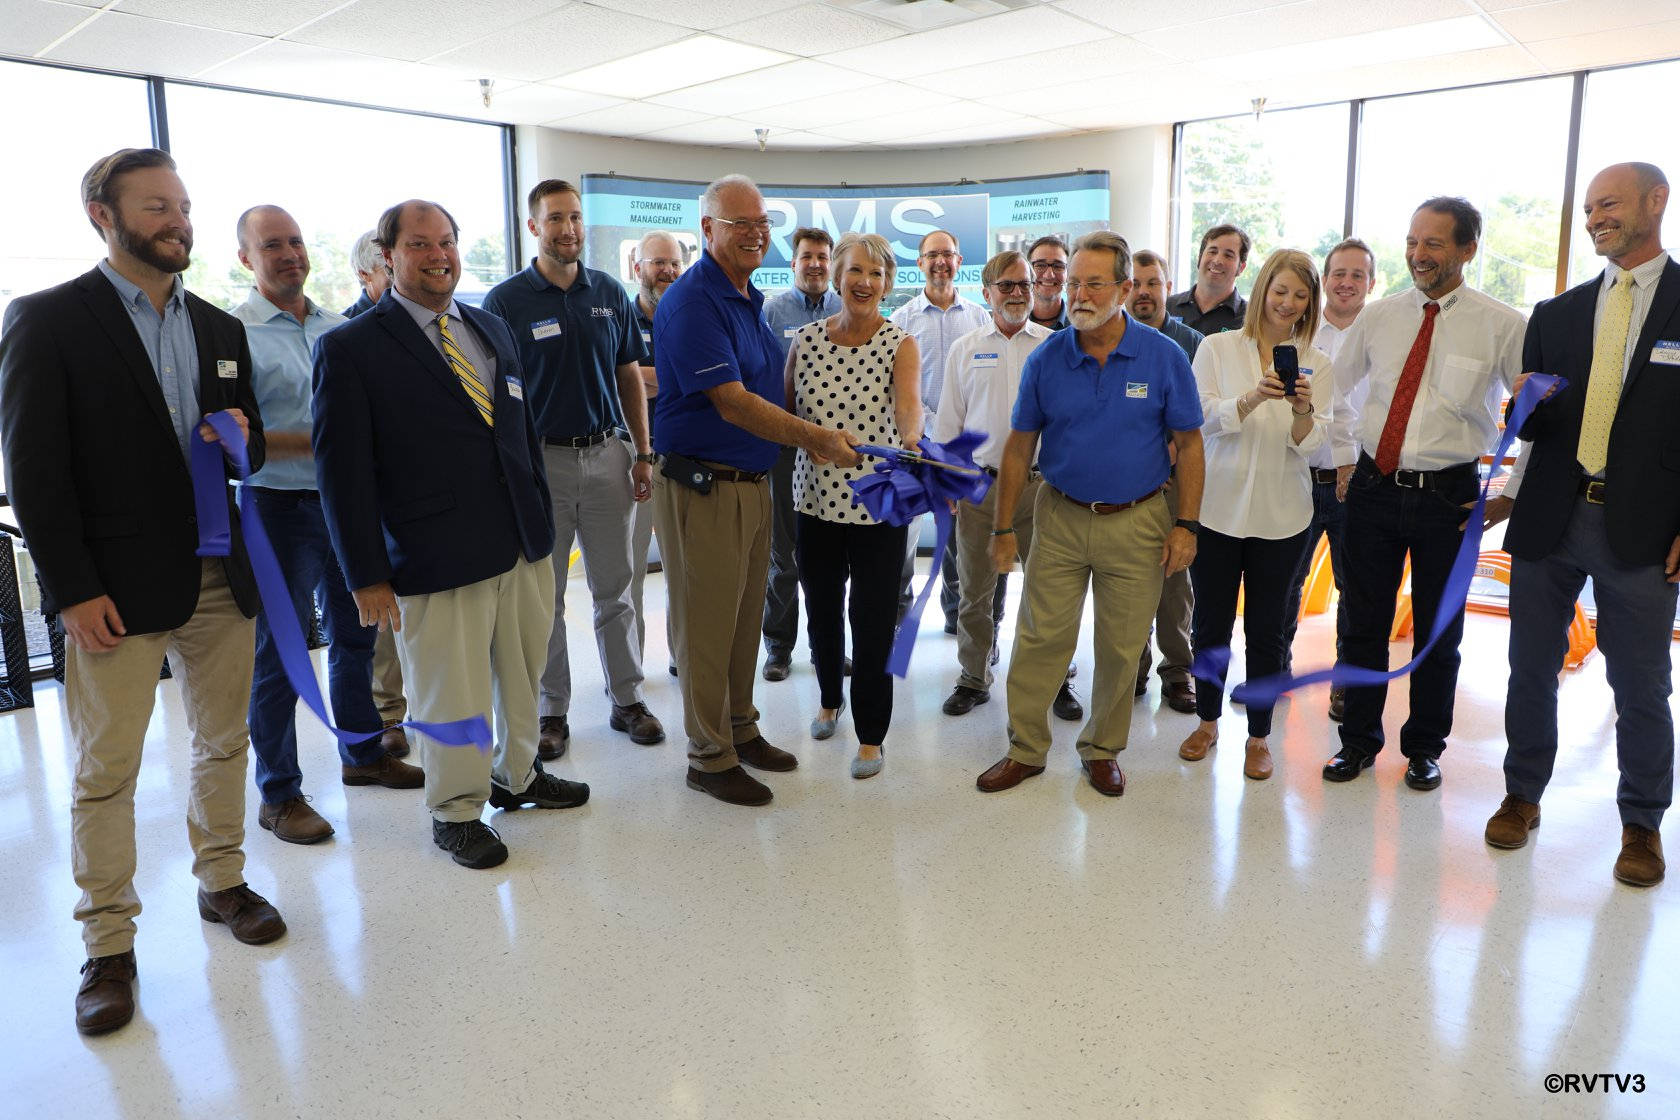 Rainwater Management Solutions Celebrates Grand Opening at New Location In Roanoke VA.